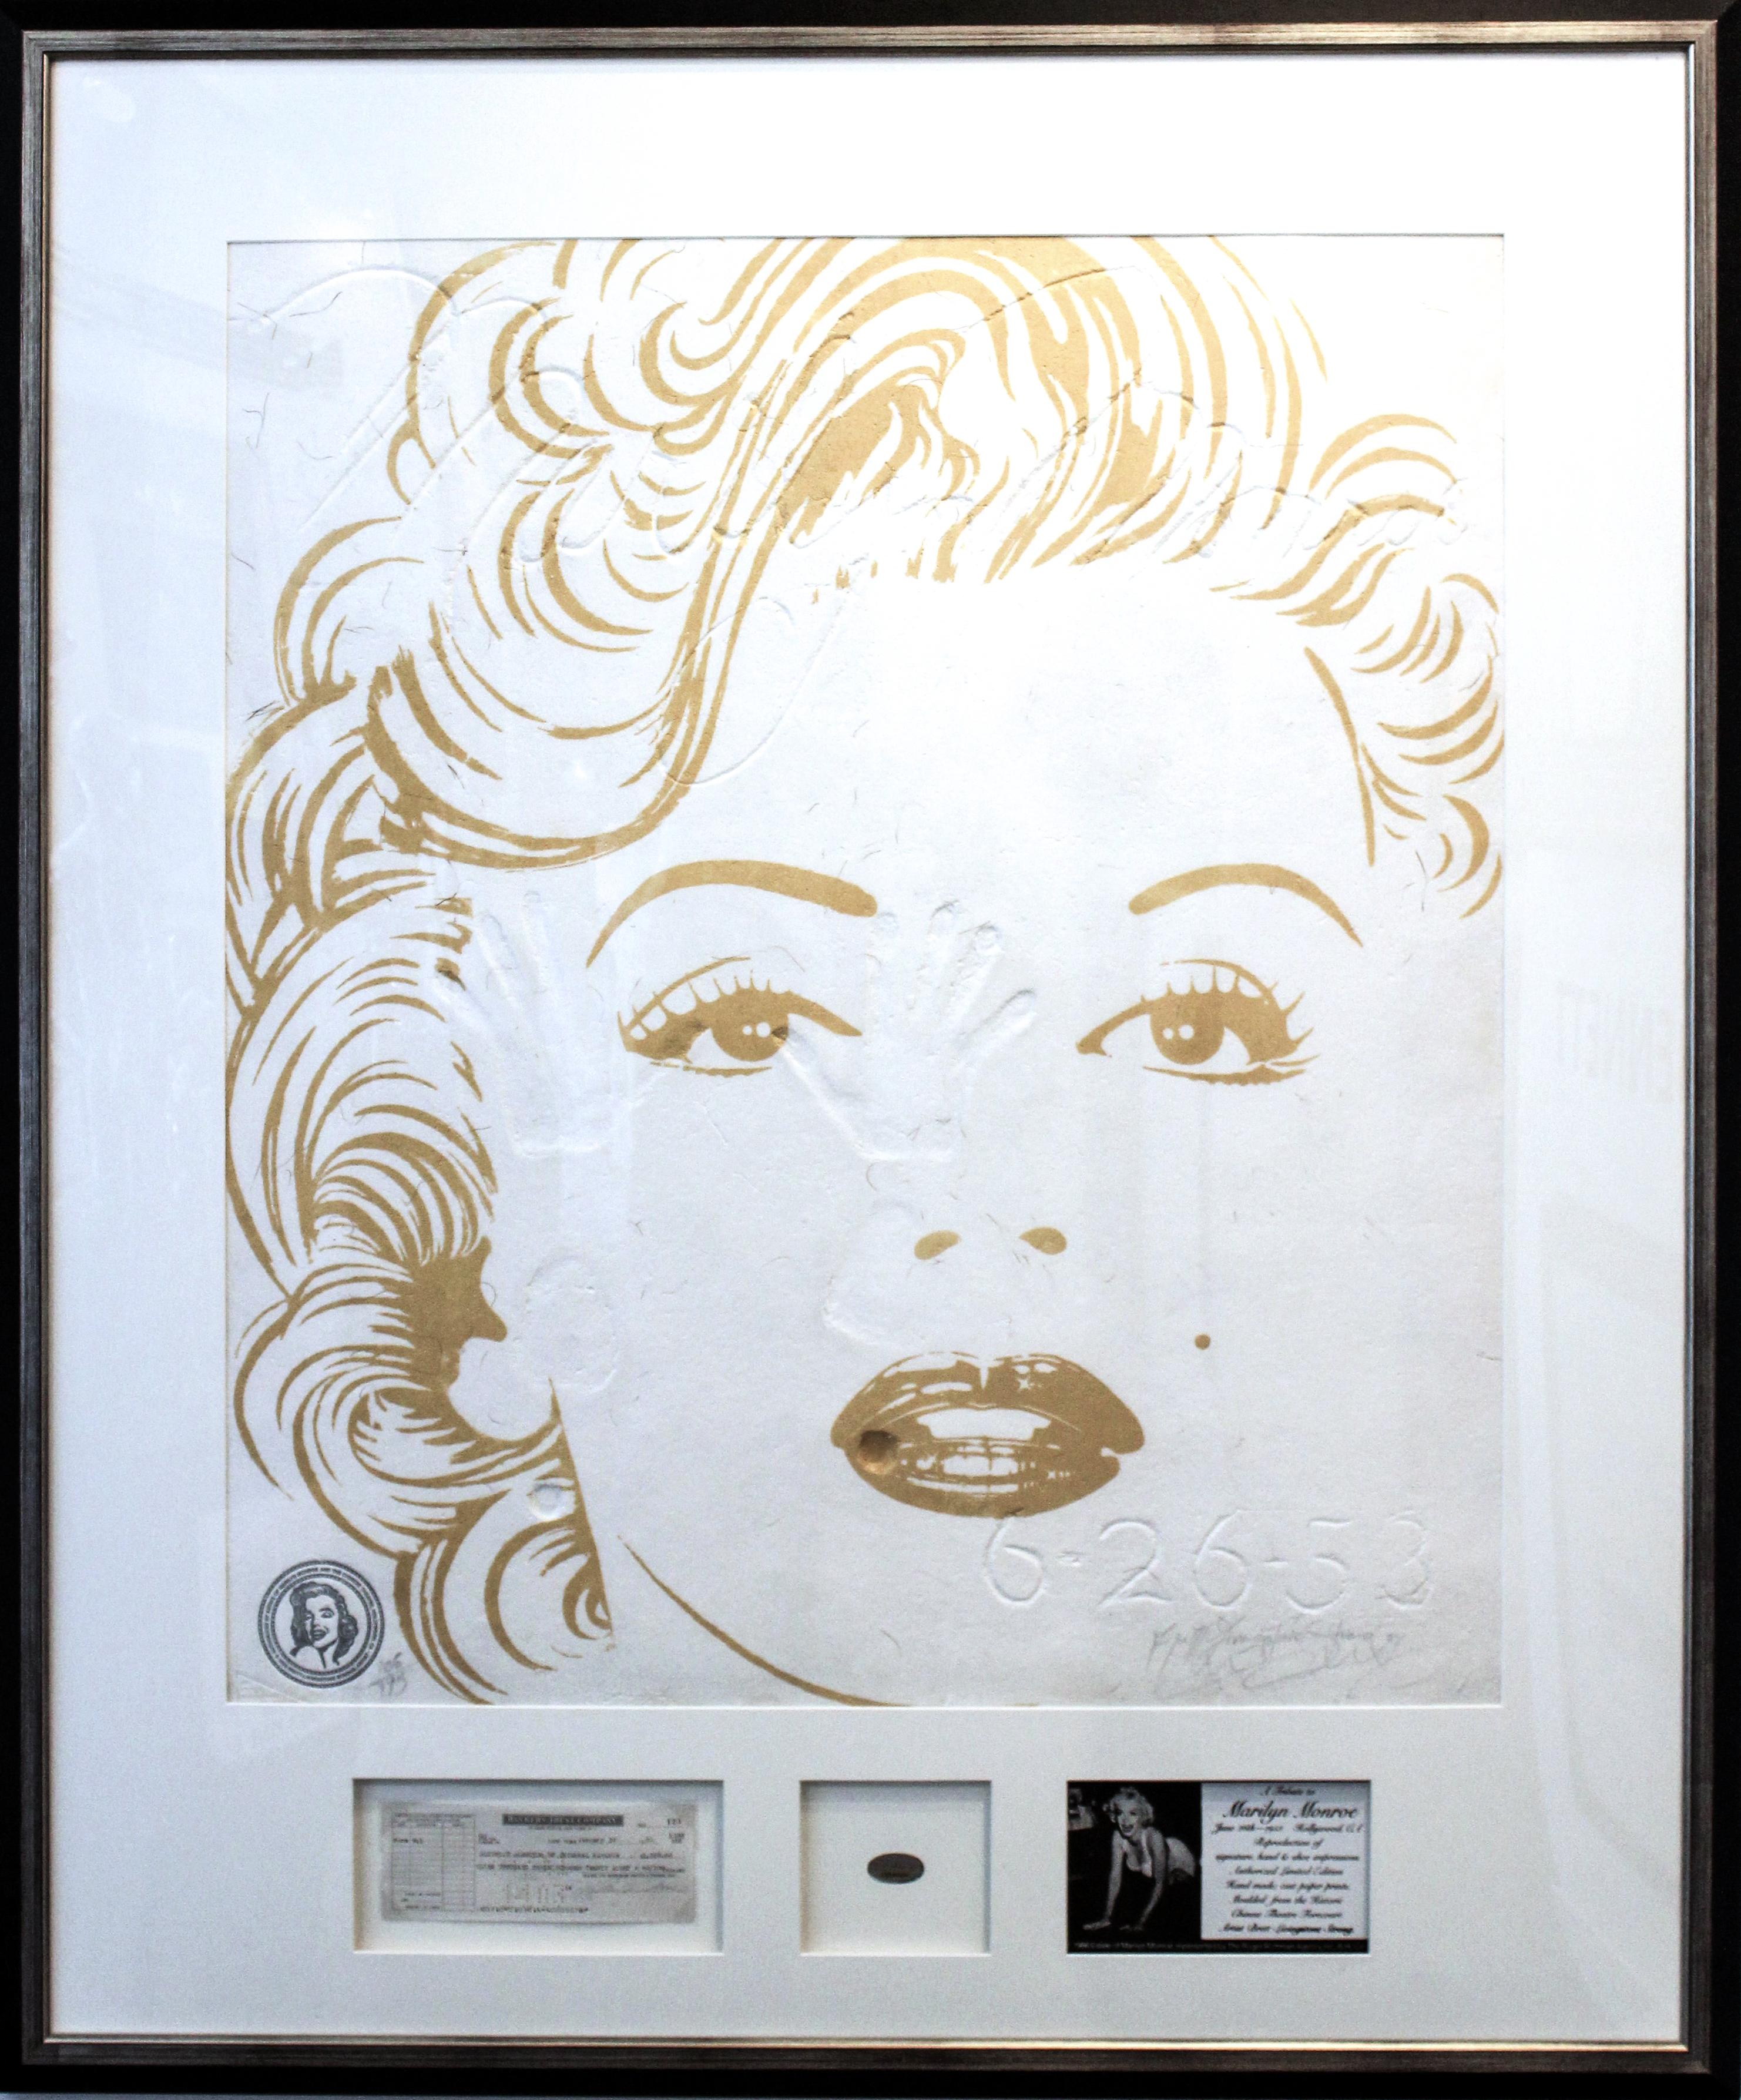 Marilyn Monroe Collection (1926-1962)